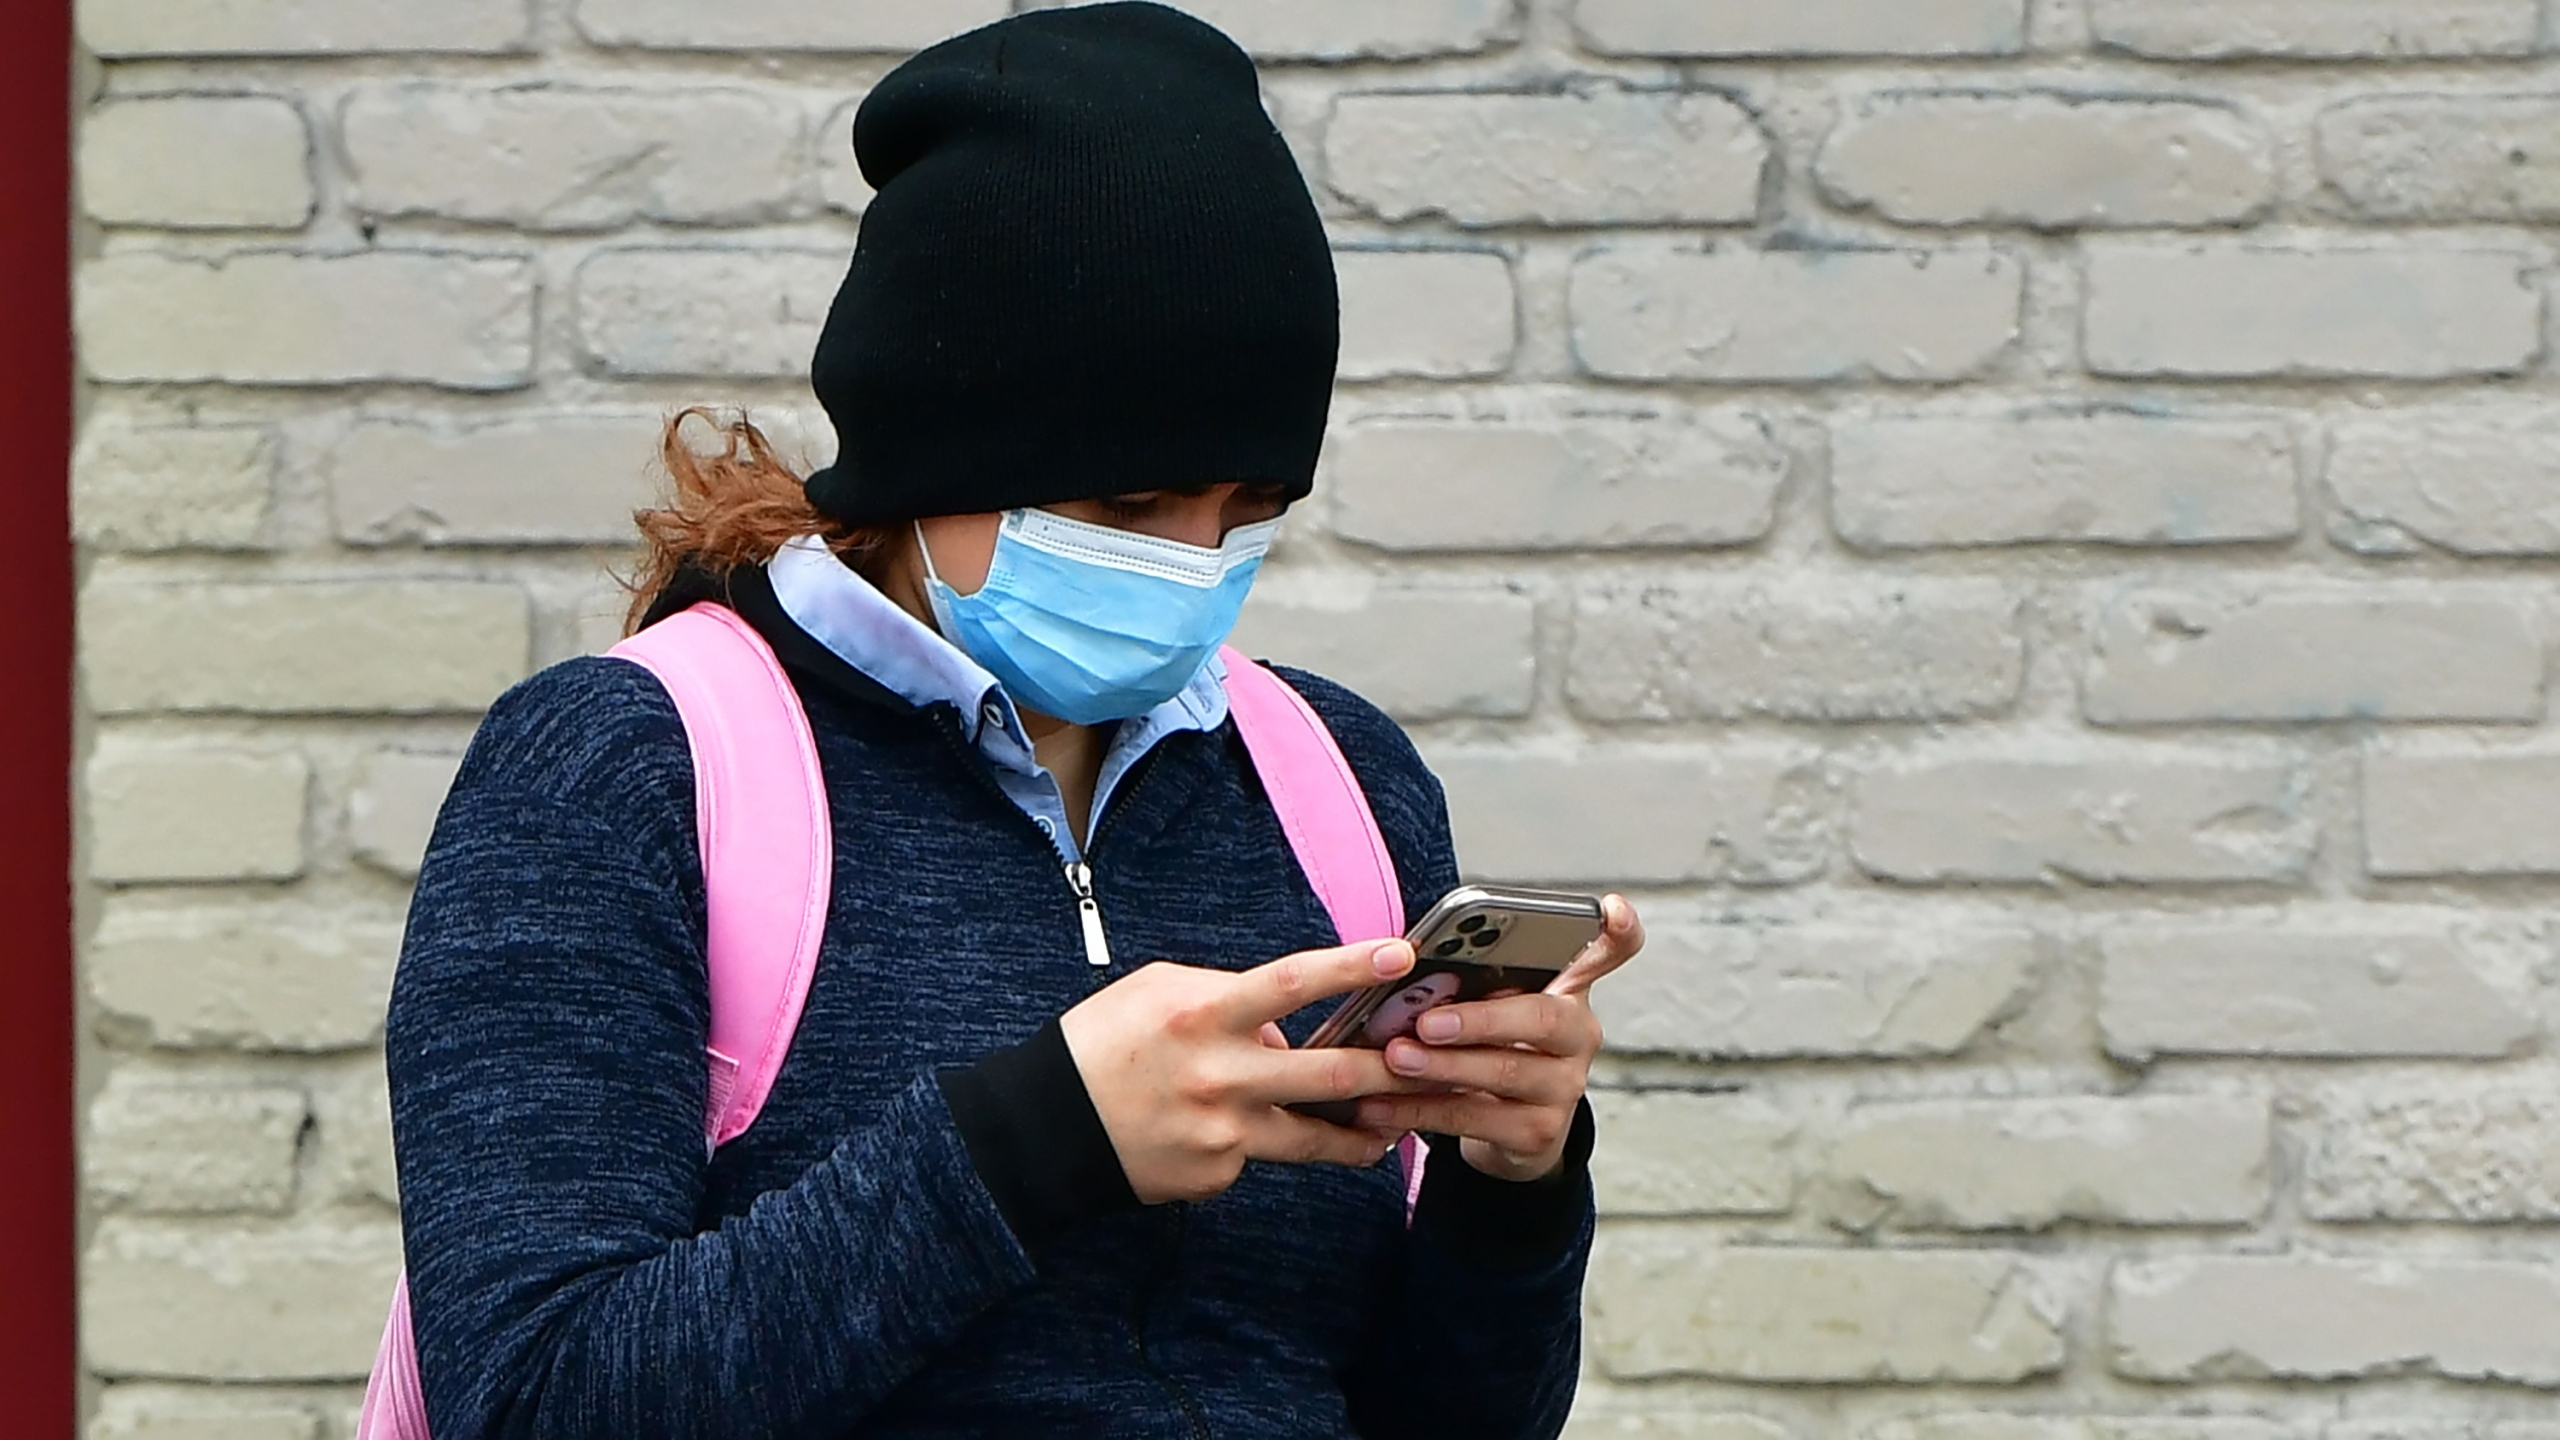 A woman wears a face mask while checking her cellphone in Los Angeles, on April 6, 2020. (FREDERIC J. BROWN/AFP via Getty Images)